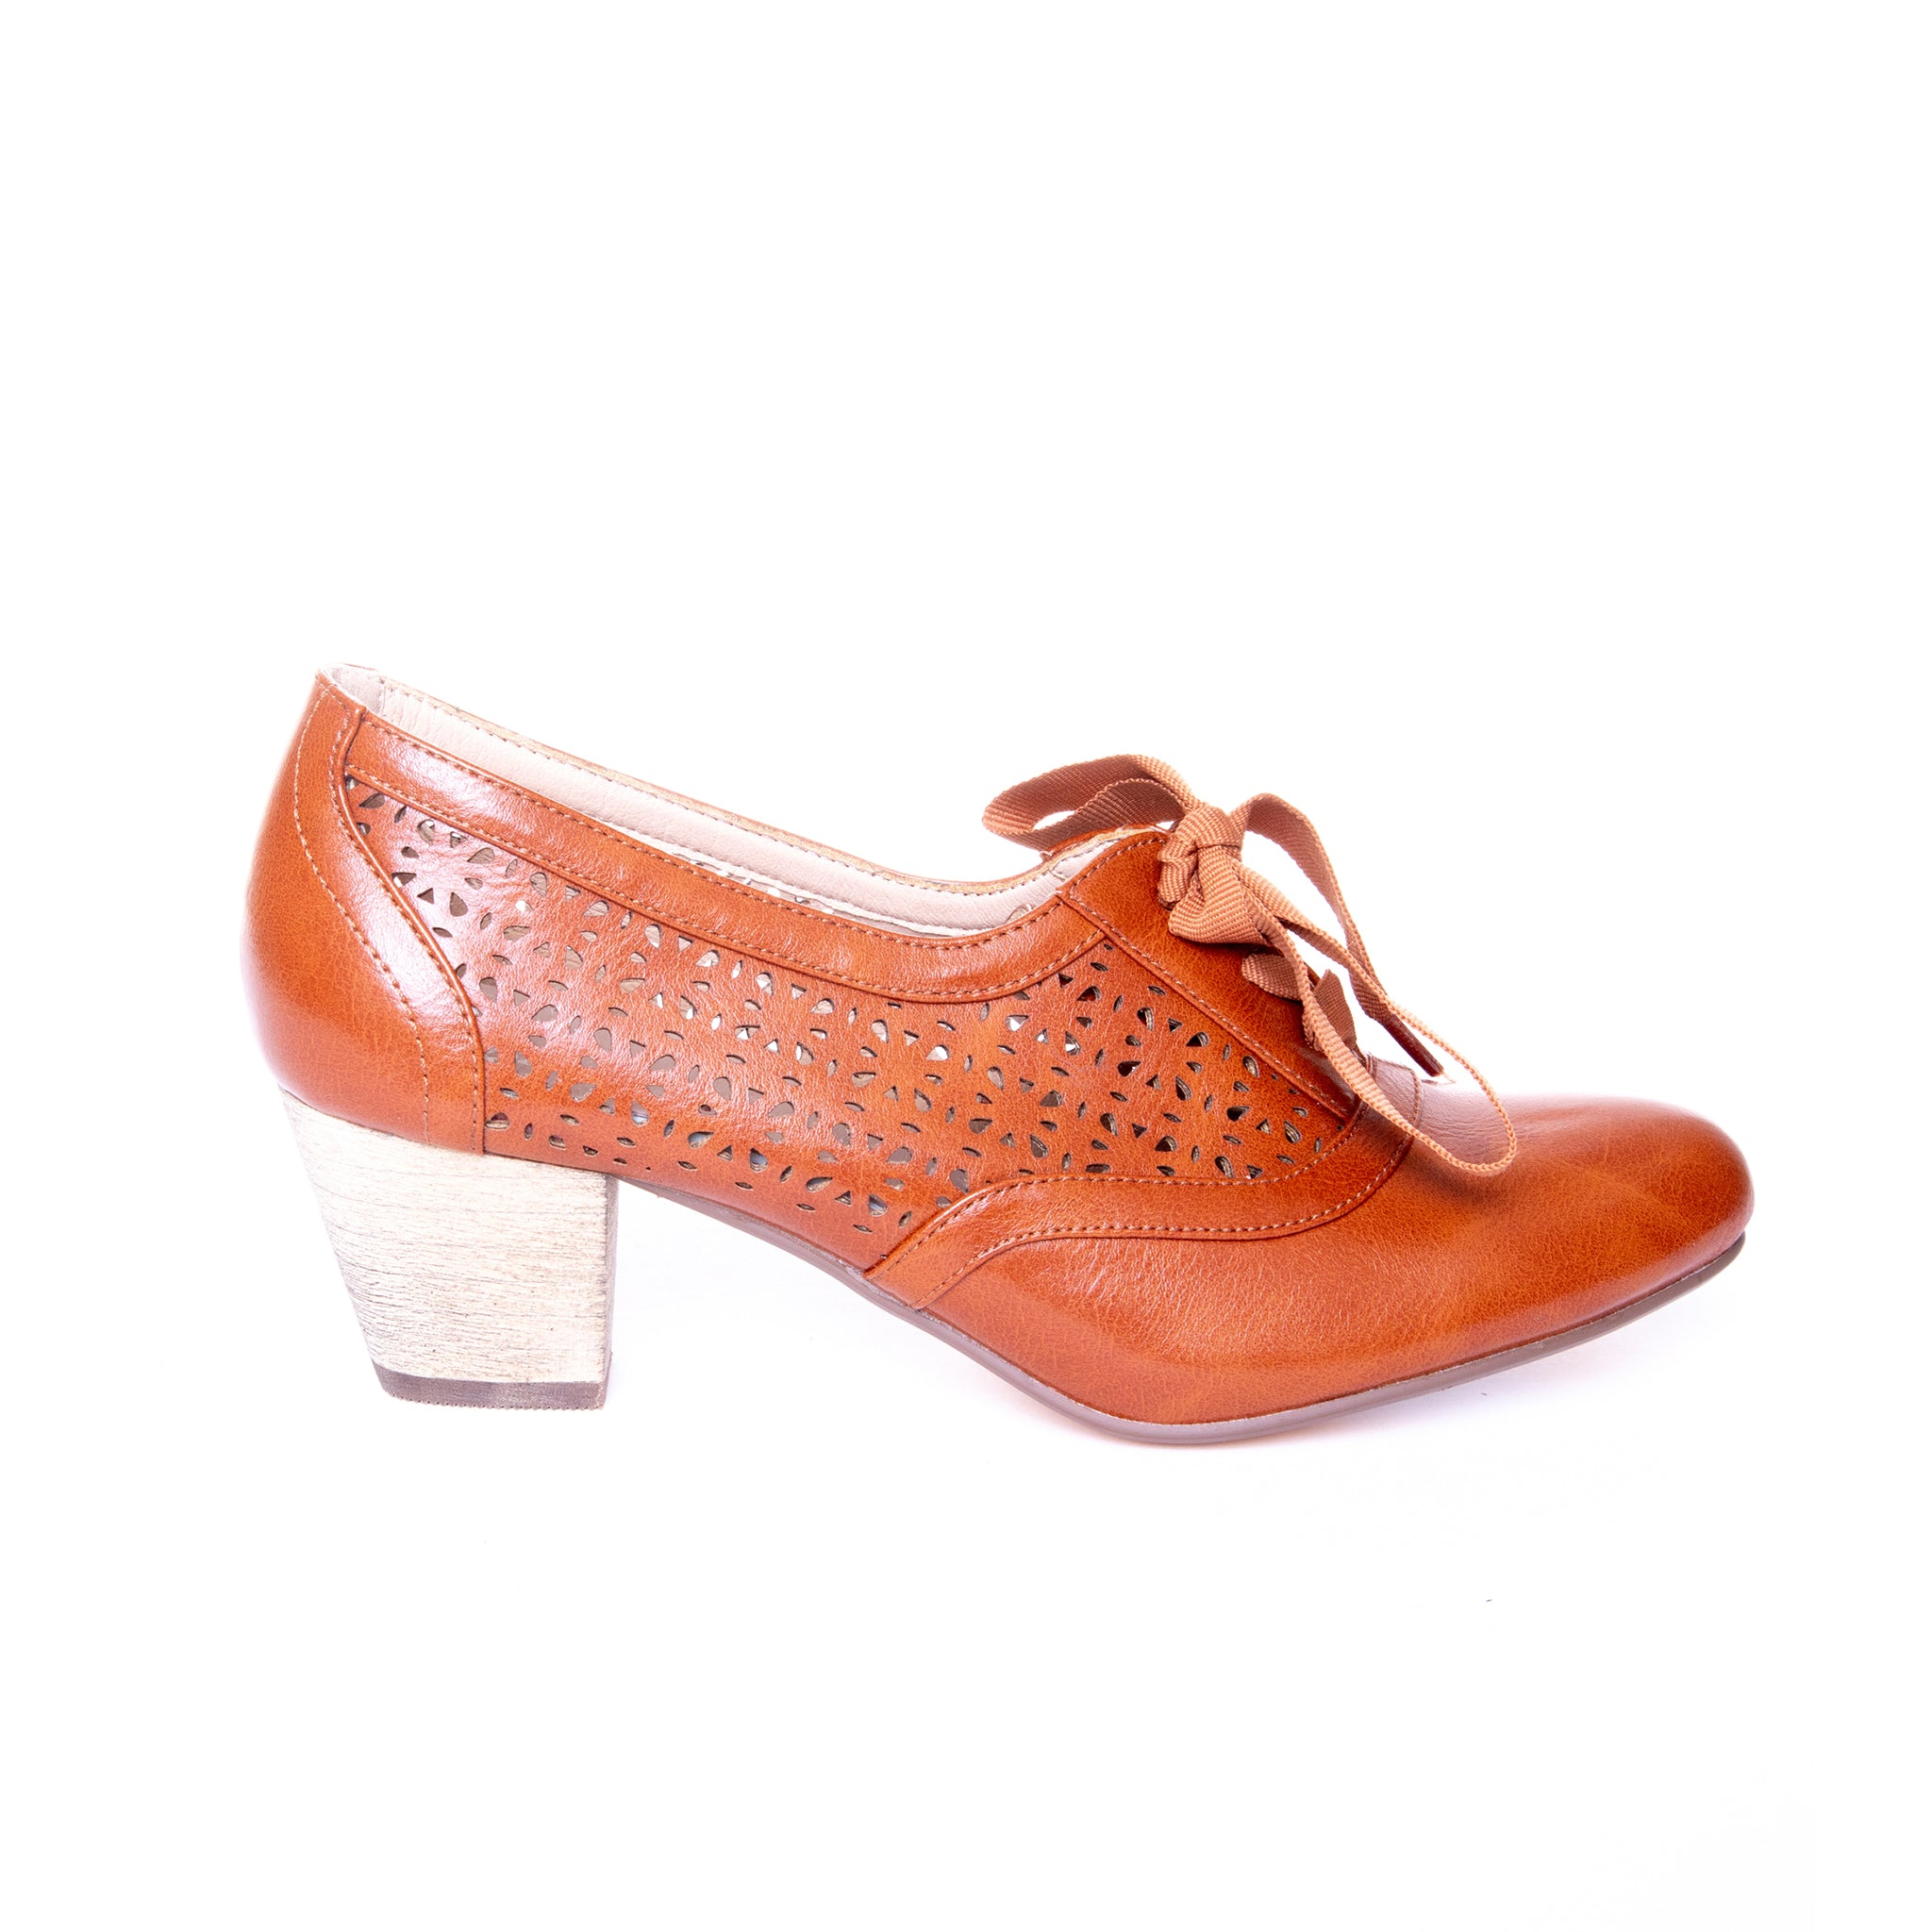 Selena by Dolce Nome | Lace Up Oxford Pumps in Tan (side view)